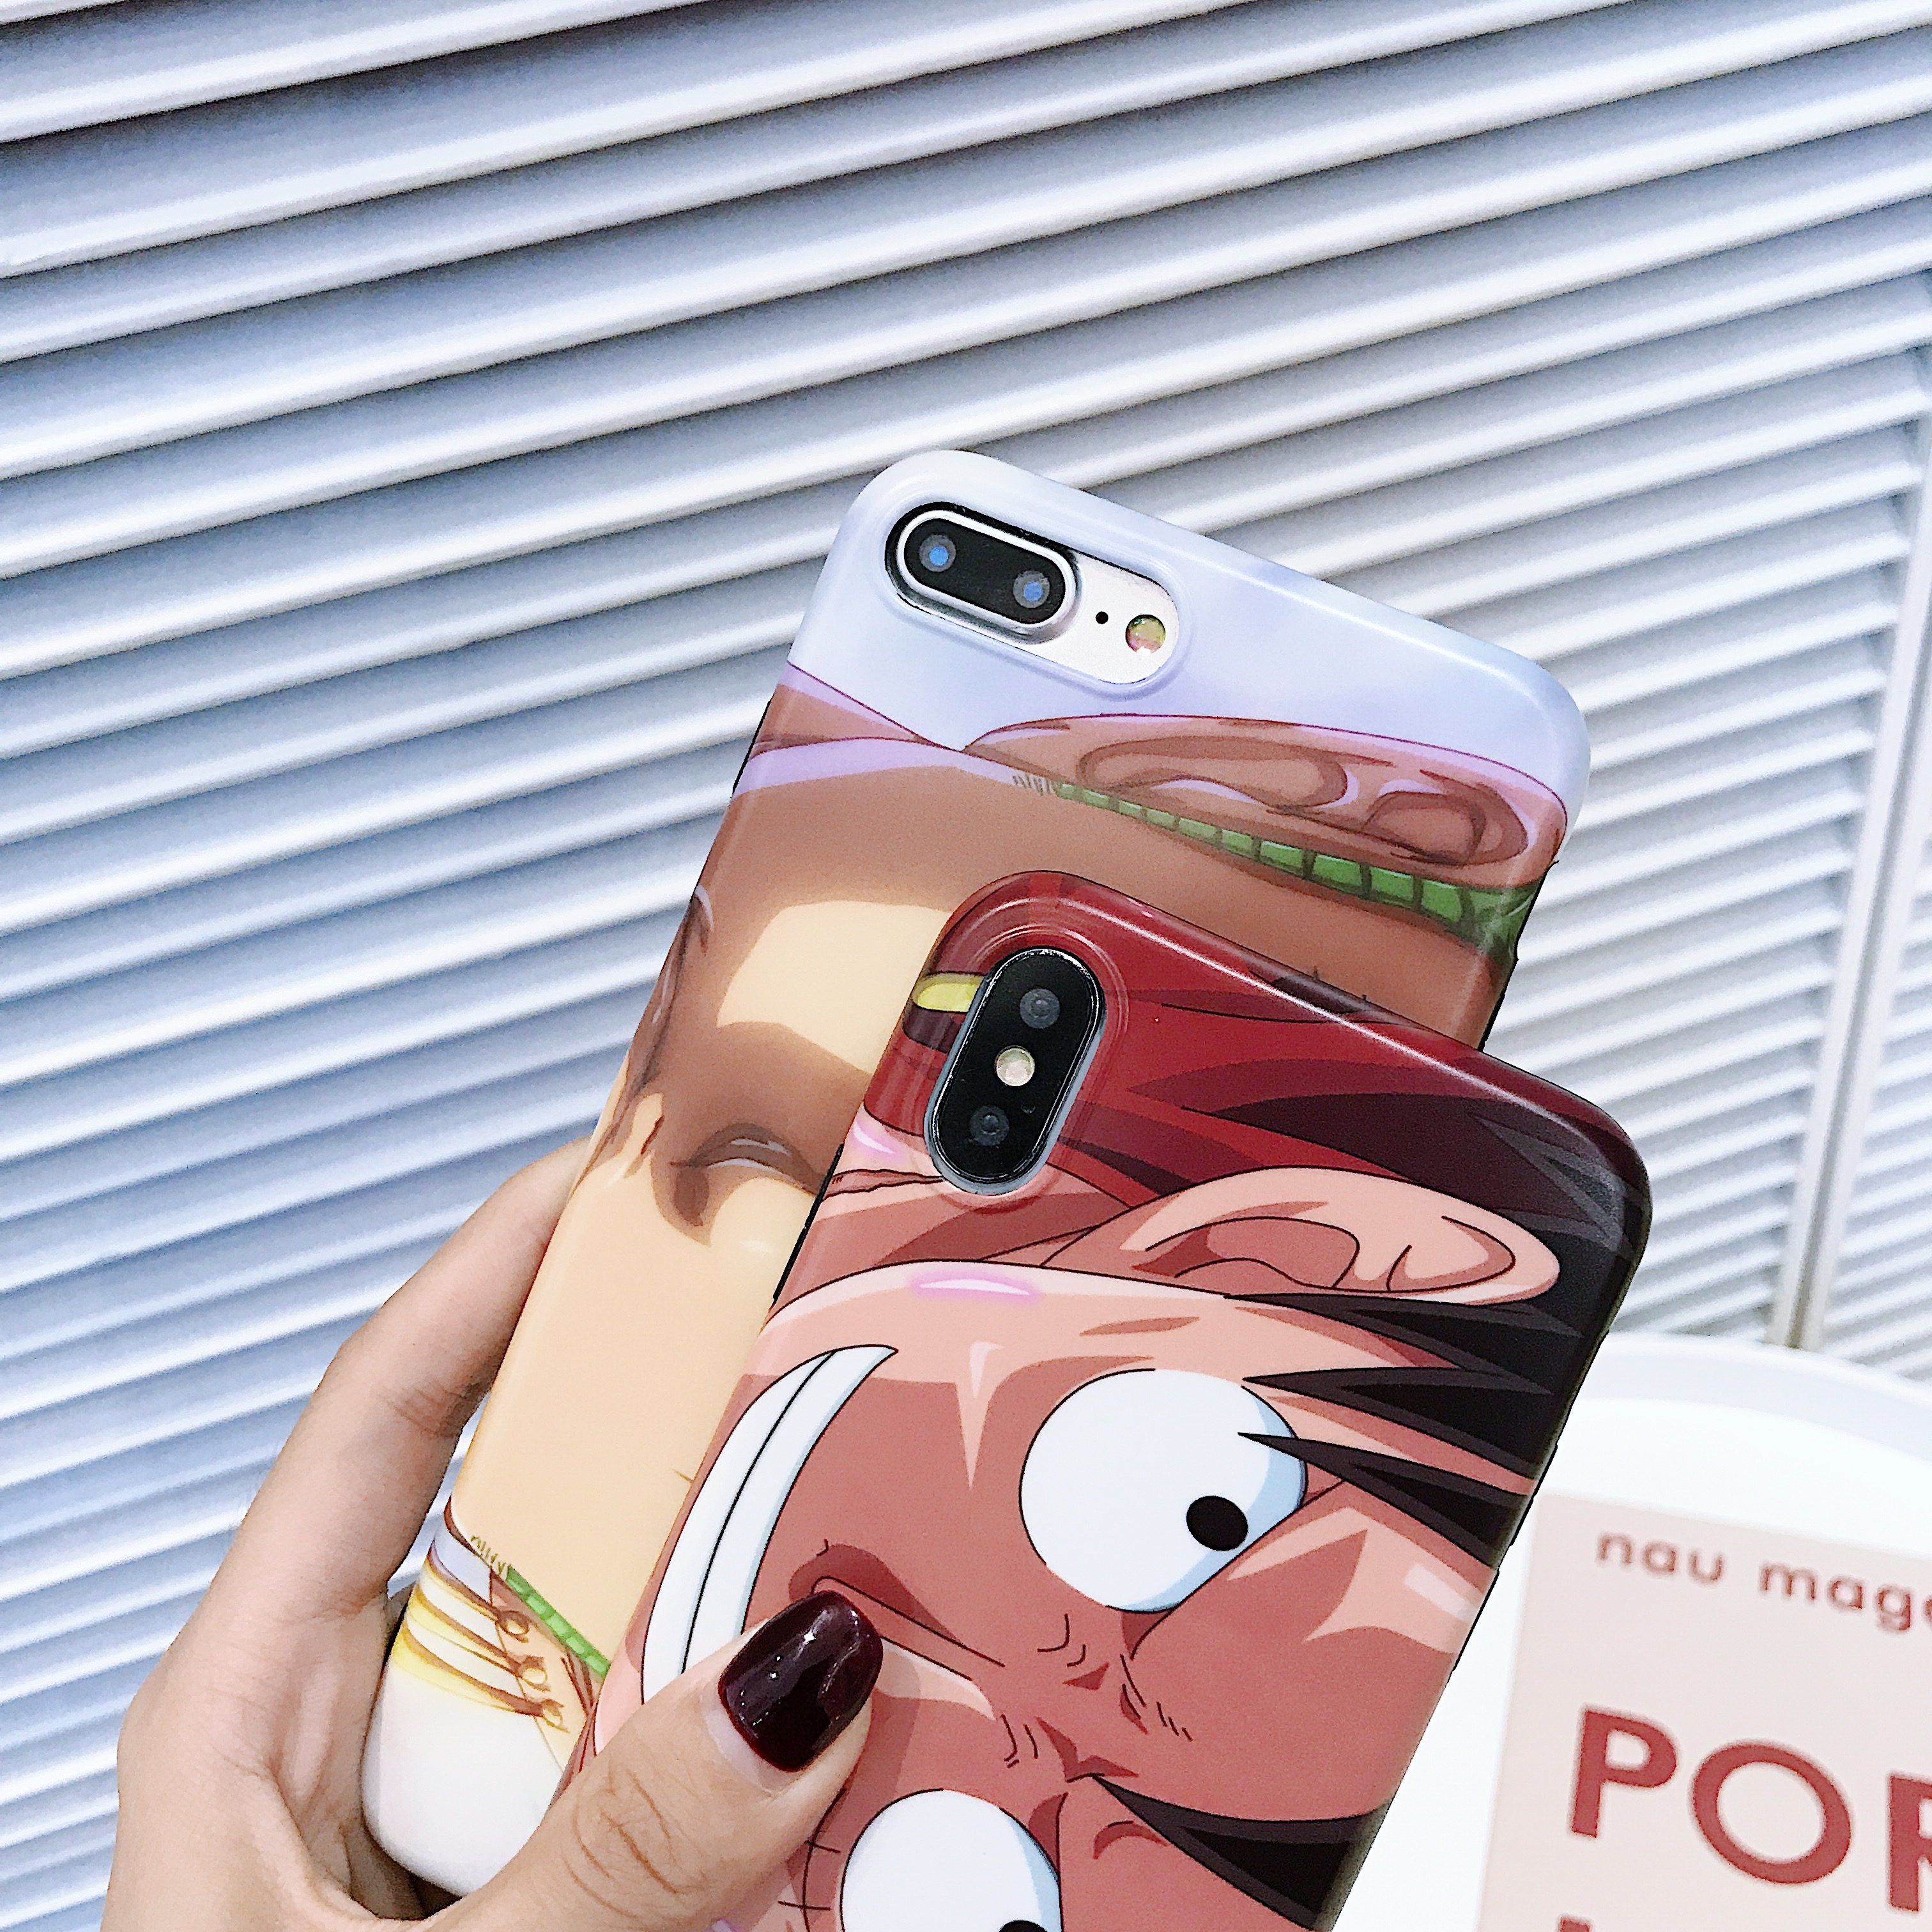 Cartoon ONE Piece Luffy Zoro Cute Phone Case Soft Cover For iPhone 6 6s 7 8 Plus X XS XR XSMax in Half wrapped Cases from Cellphones Telecommunications